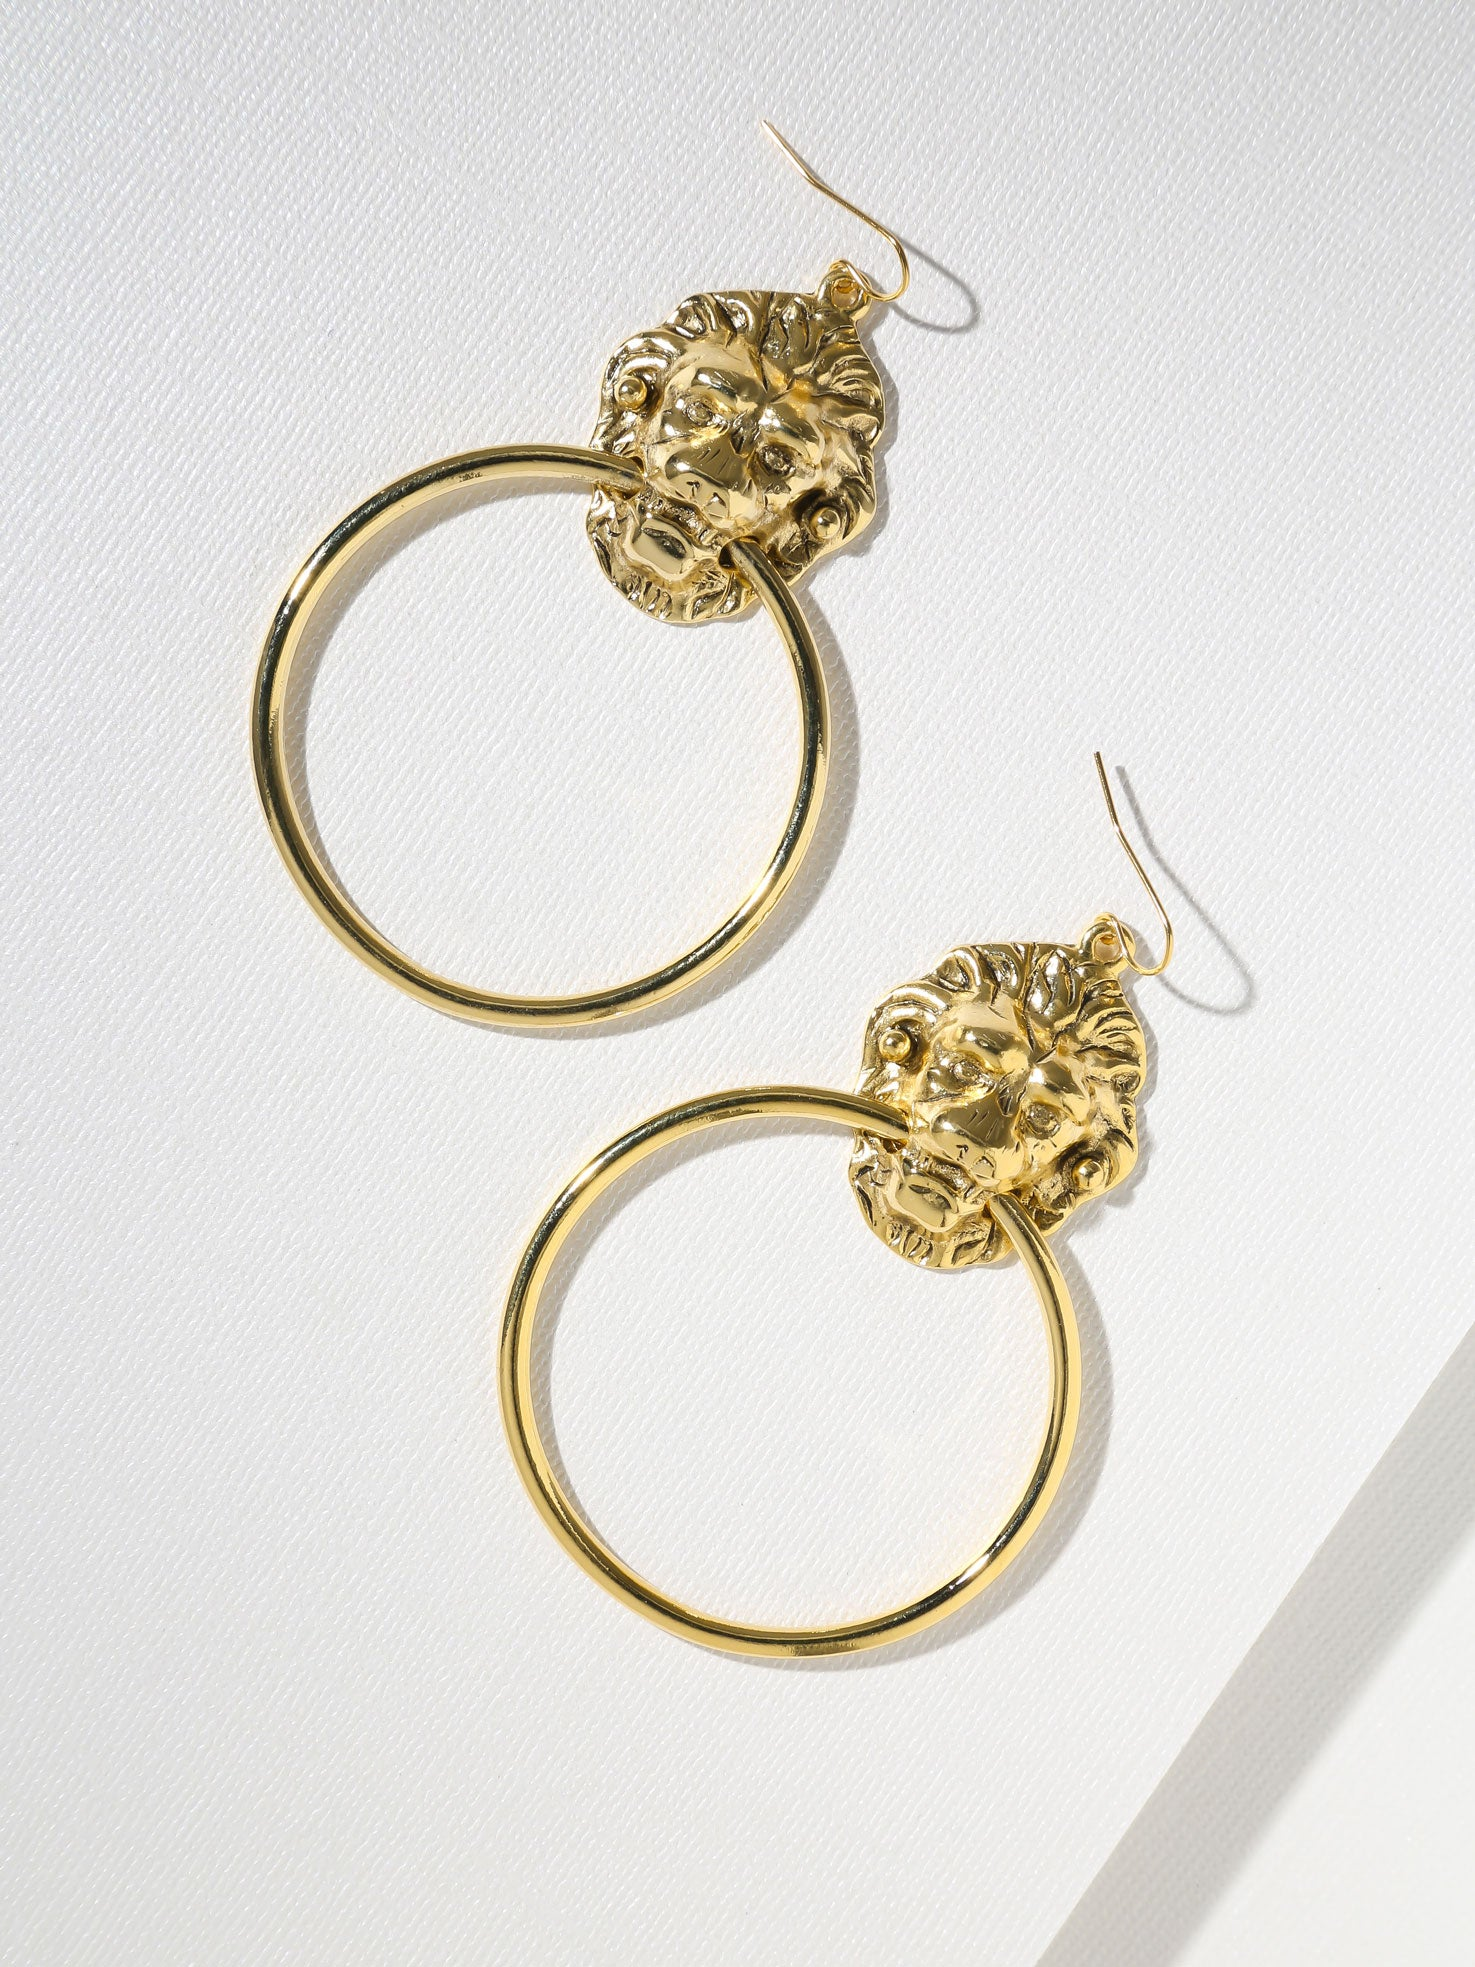 Picture of: Vanessa Mooney Women S Hoops Earrings Gold One Size